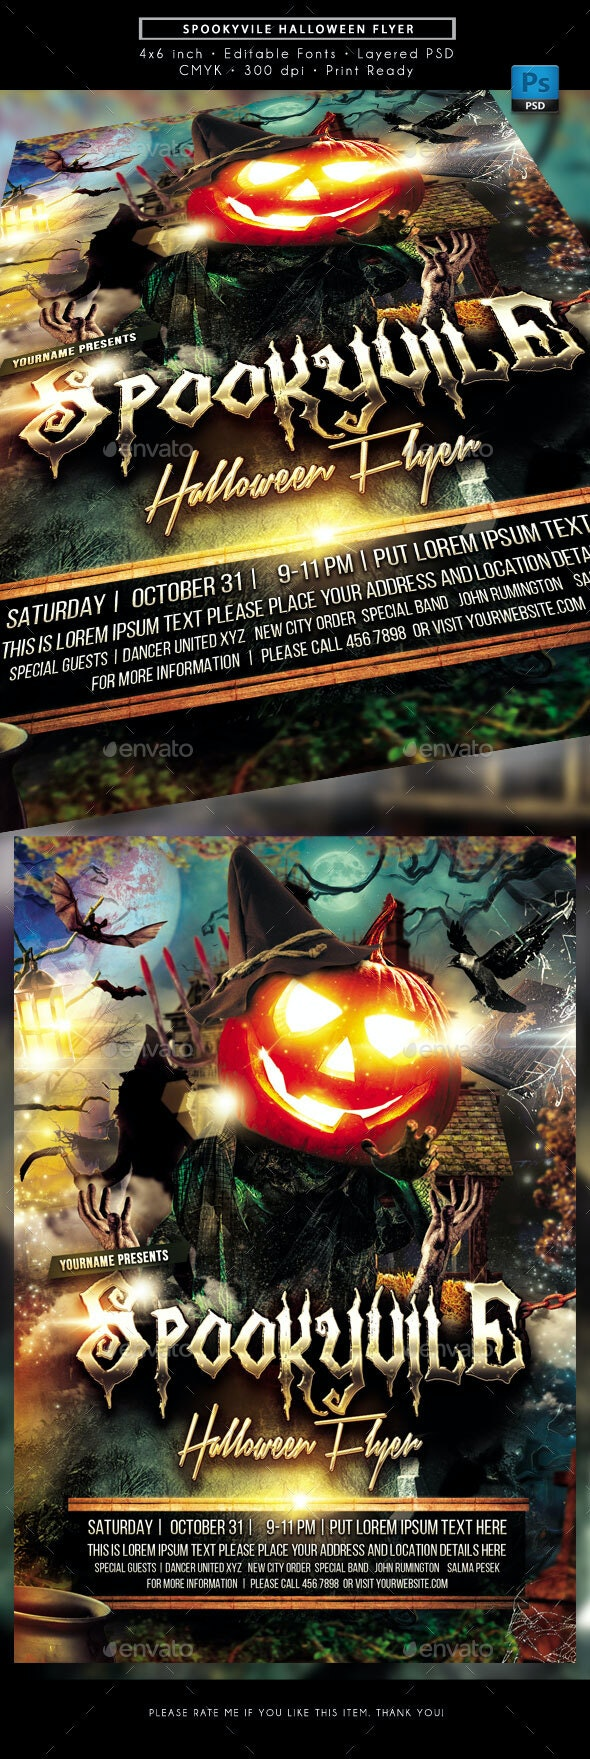 Spookyvile Halloween Party Event Flyer - Holidays Events